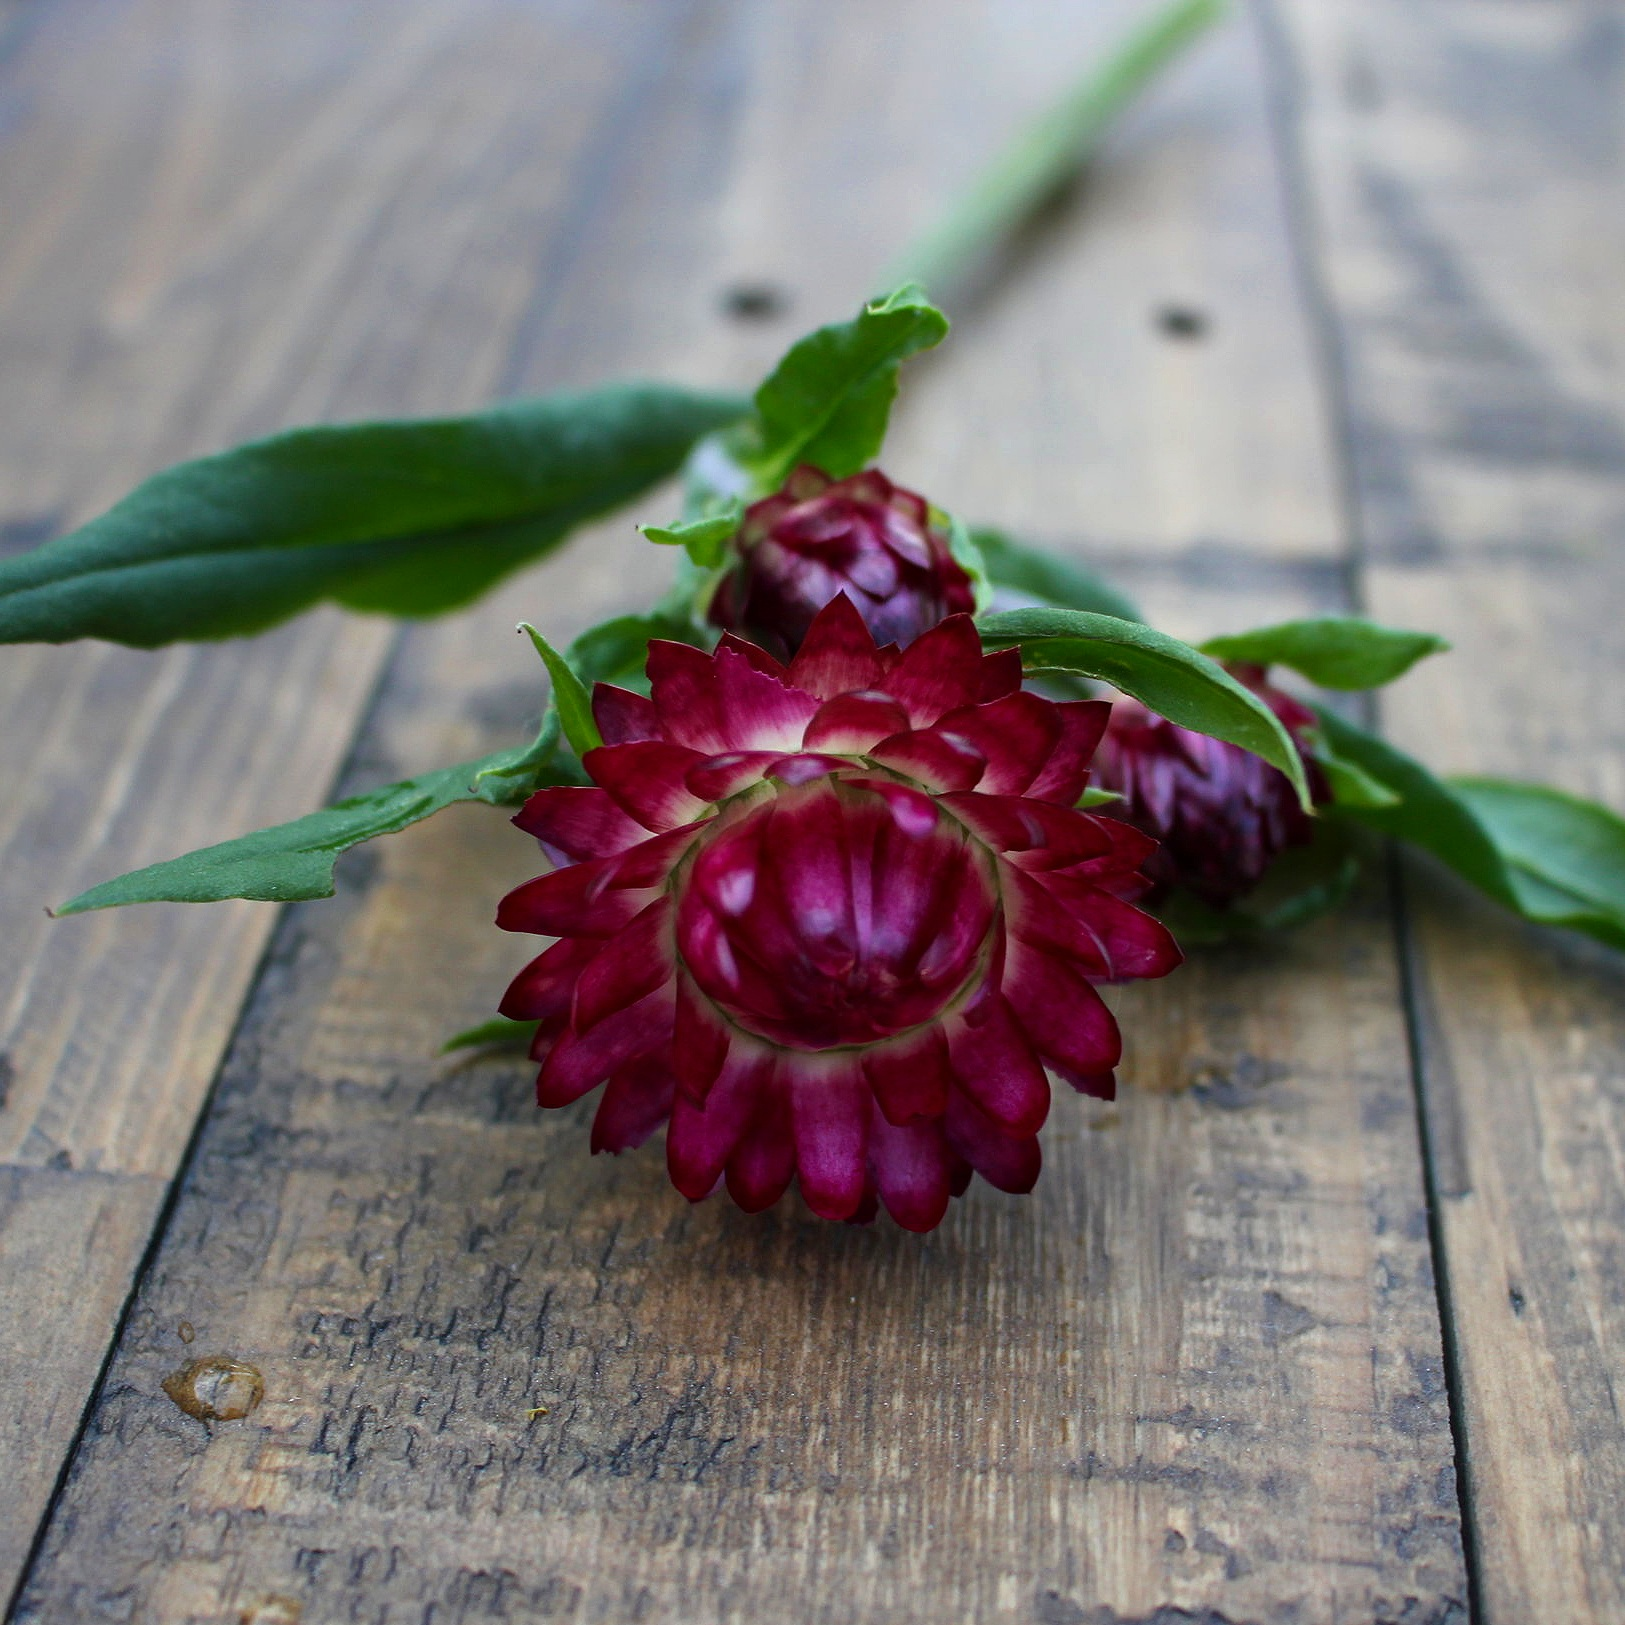 Strawflower, Pomegranate - Now available